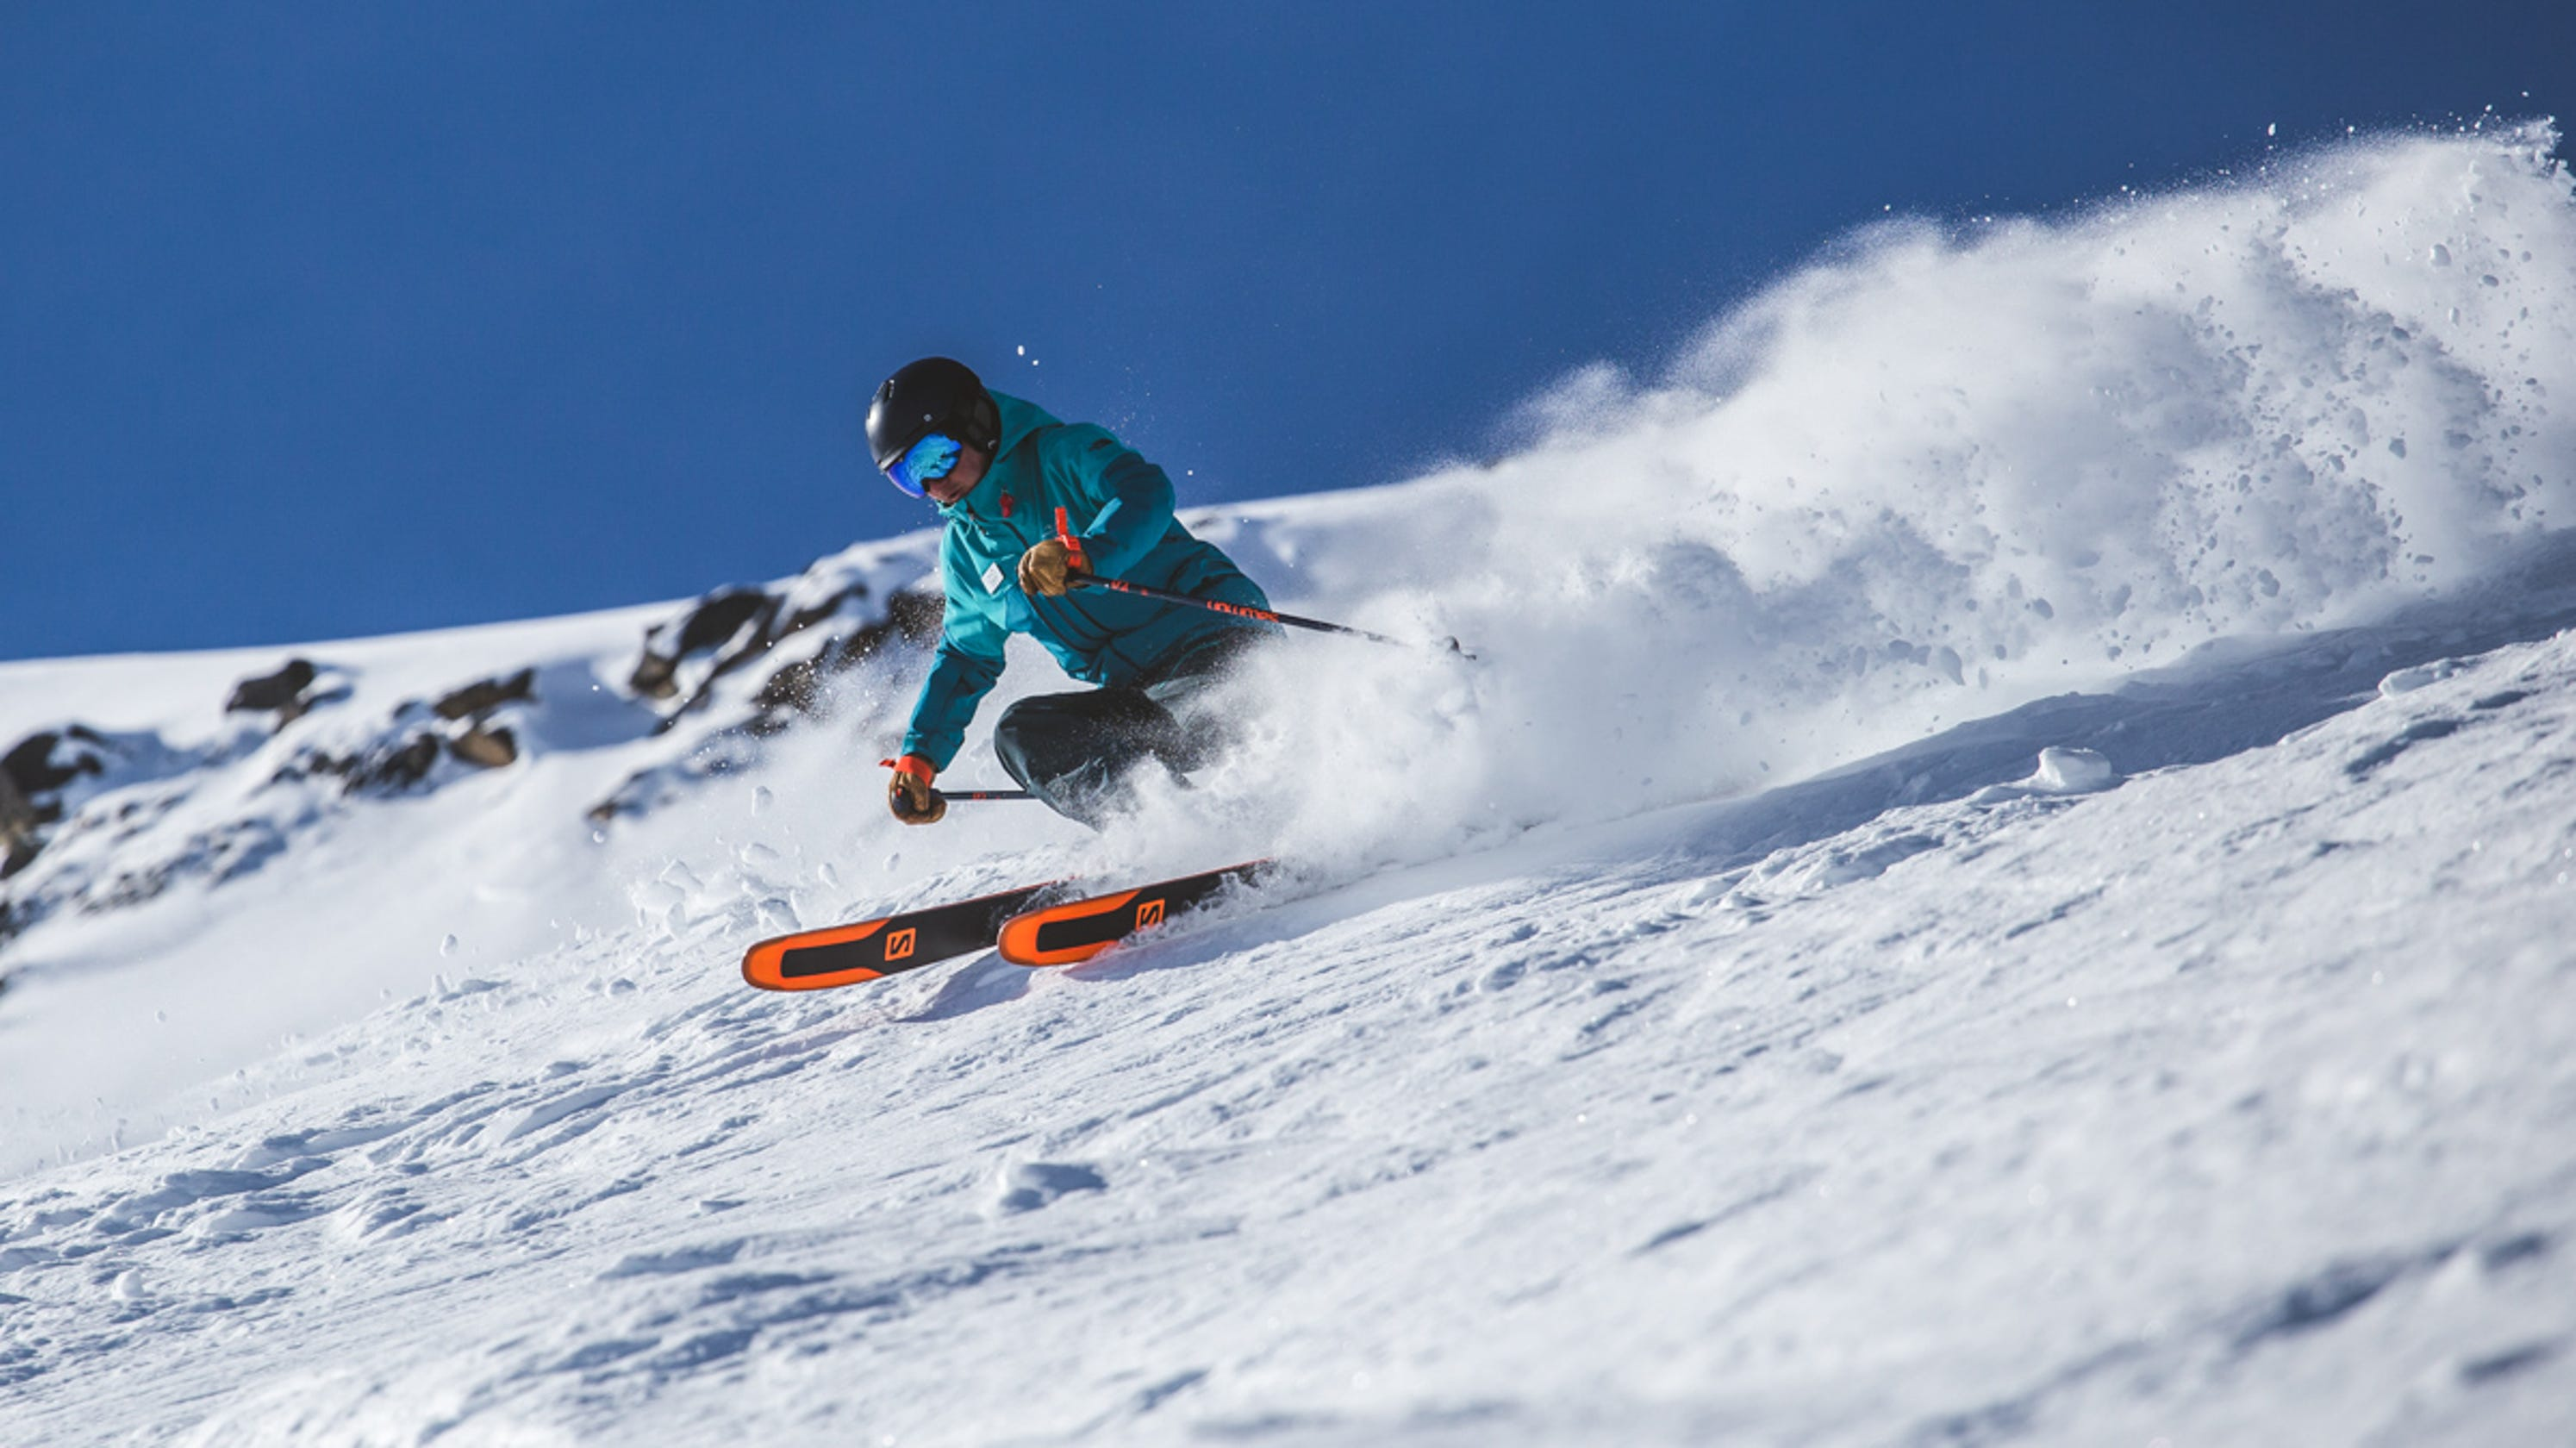 Whistler Blackcomb: How to ski North America's largest resort